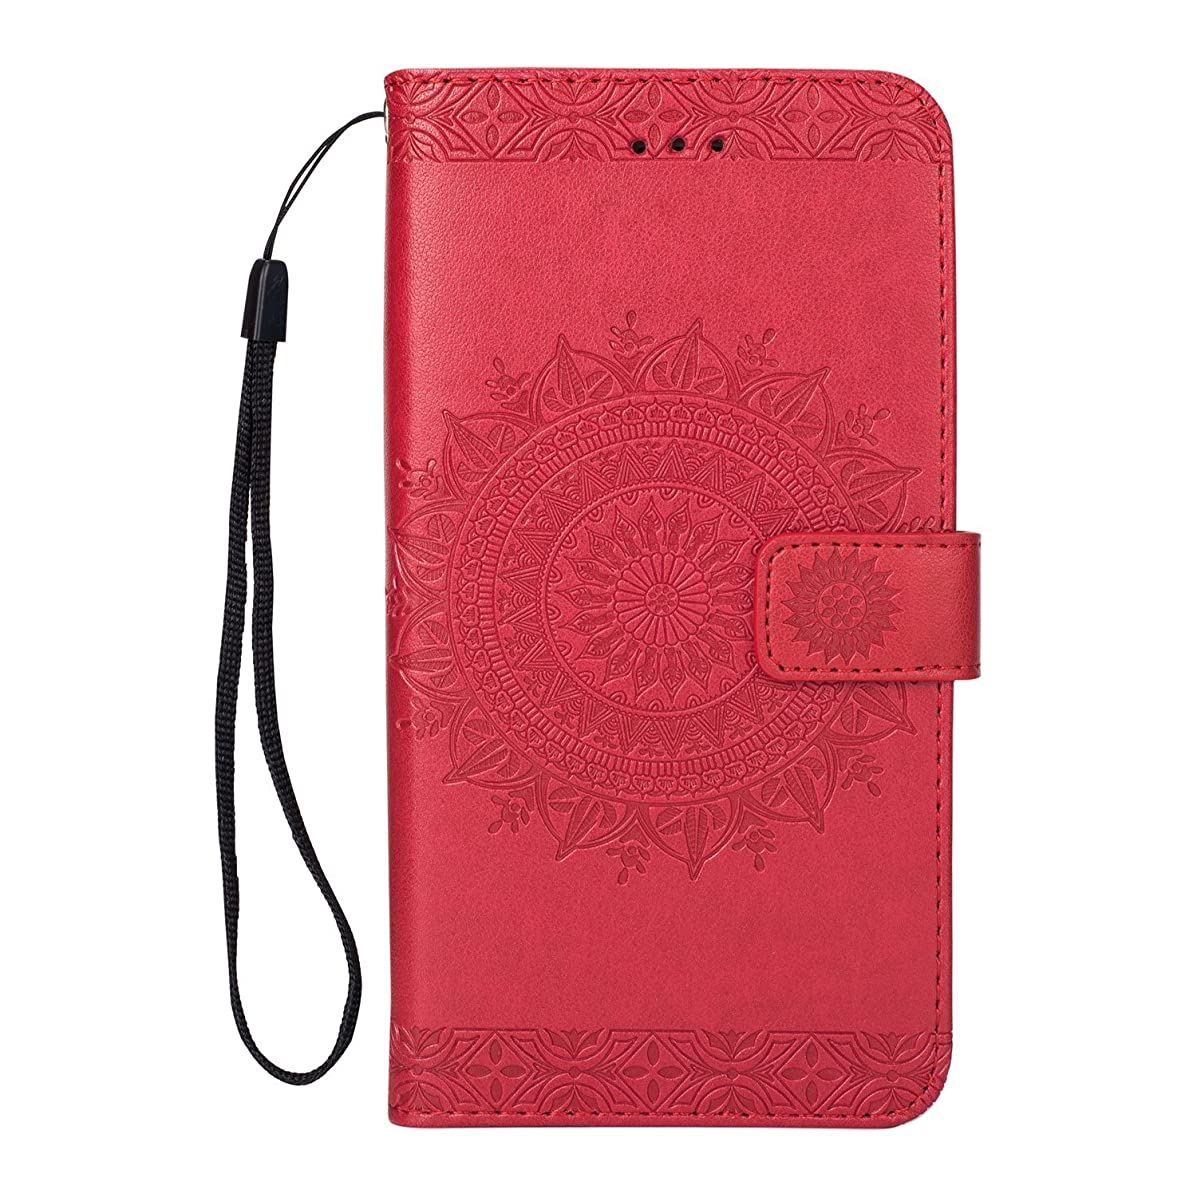 AIIYG DS,iPhone 8 Plus Case,iPhone 7 Plus Wallet Cases,Caseowl Embossed Mandala Pattern Flower Floral Pu Leather Flip Wallet Case with Card Slots & Kickstand for Apple iPhone 8 Plus(Red)